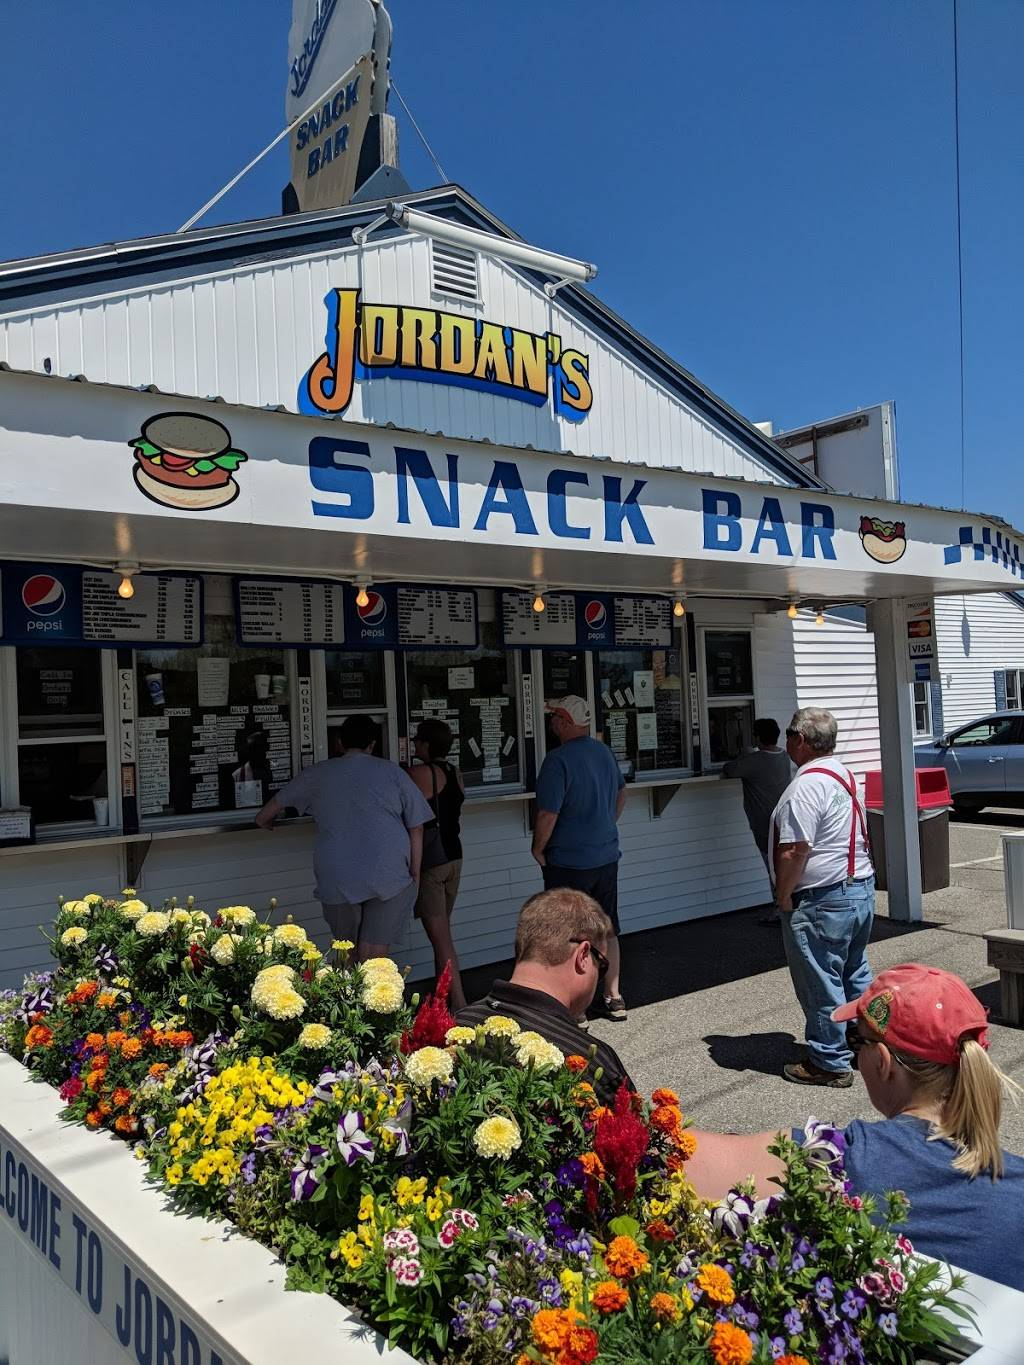 Jordans Snack Bar | meal takeaway | 200 Downeast Highway, Ellsworth, ME 04605, USA | 2076672174 OR +1 207-667-2174